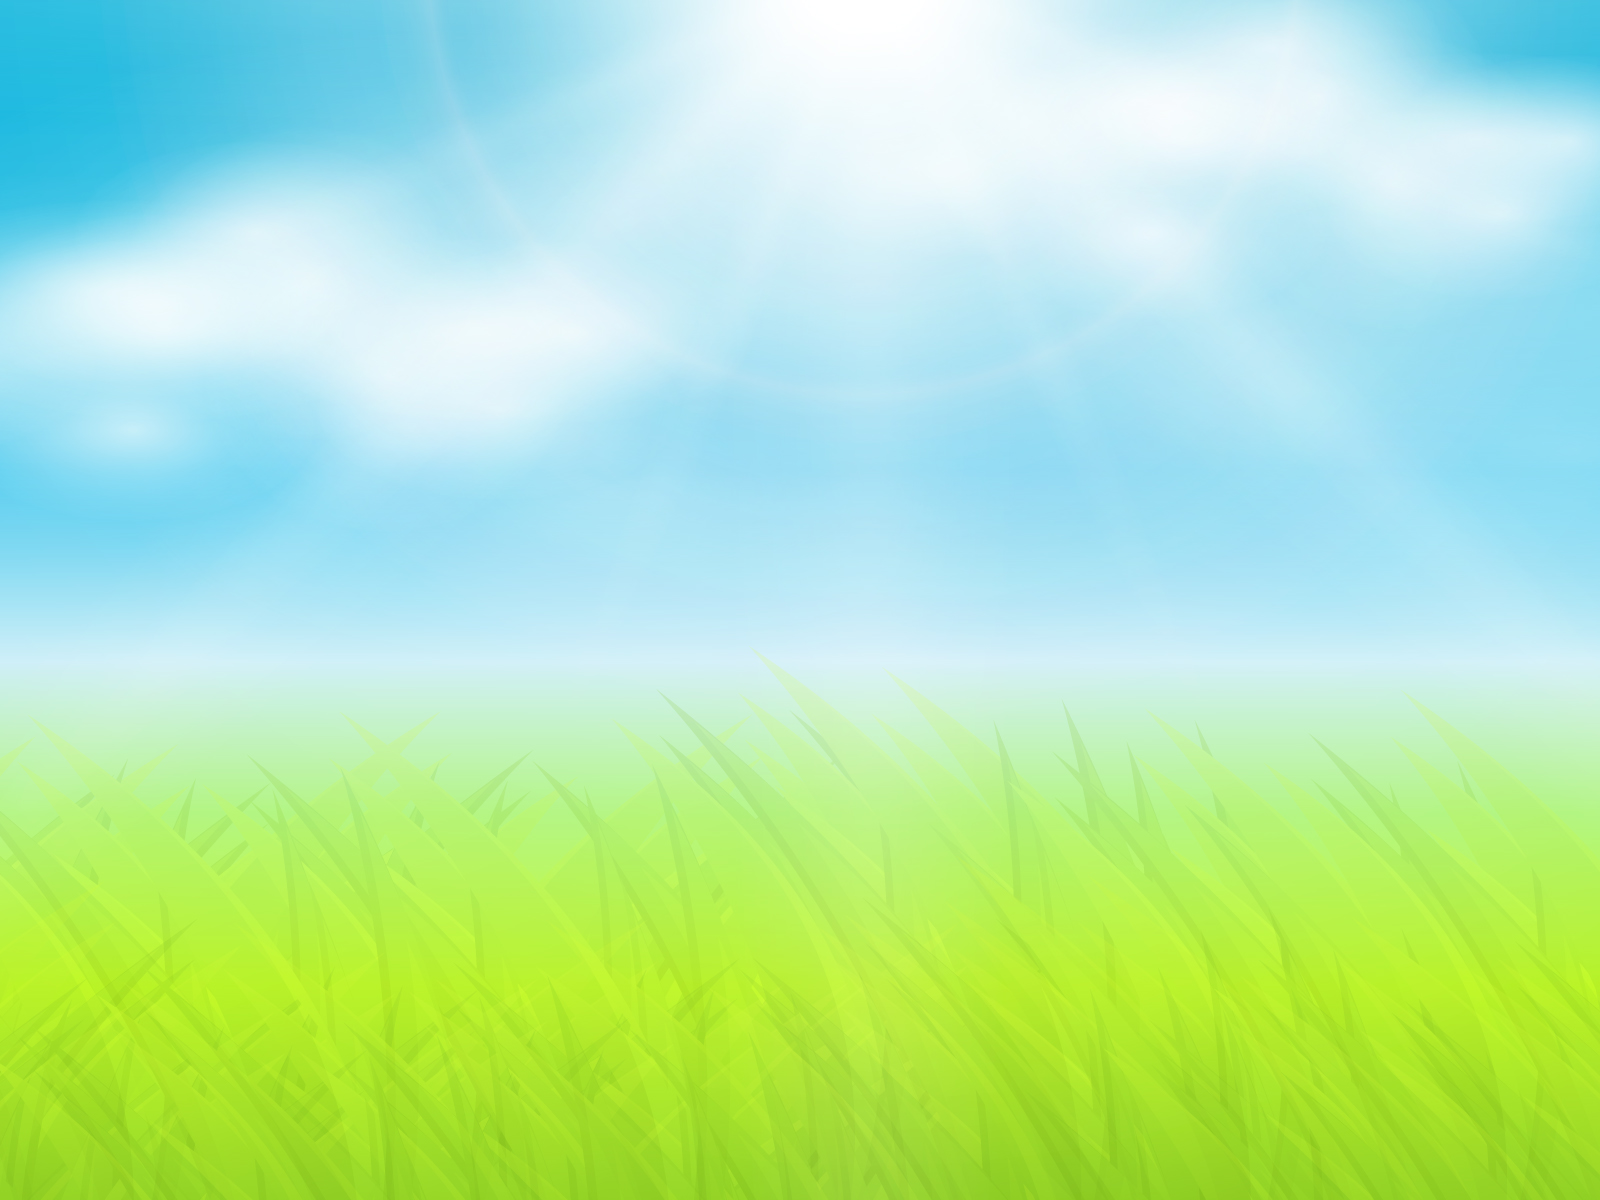 grass and sun backgrounds blue colors design green nature white yellow templates free. Black Bedroom Furniture Sets. Home Design Ideas